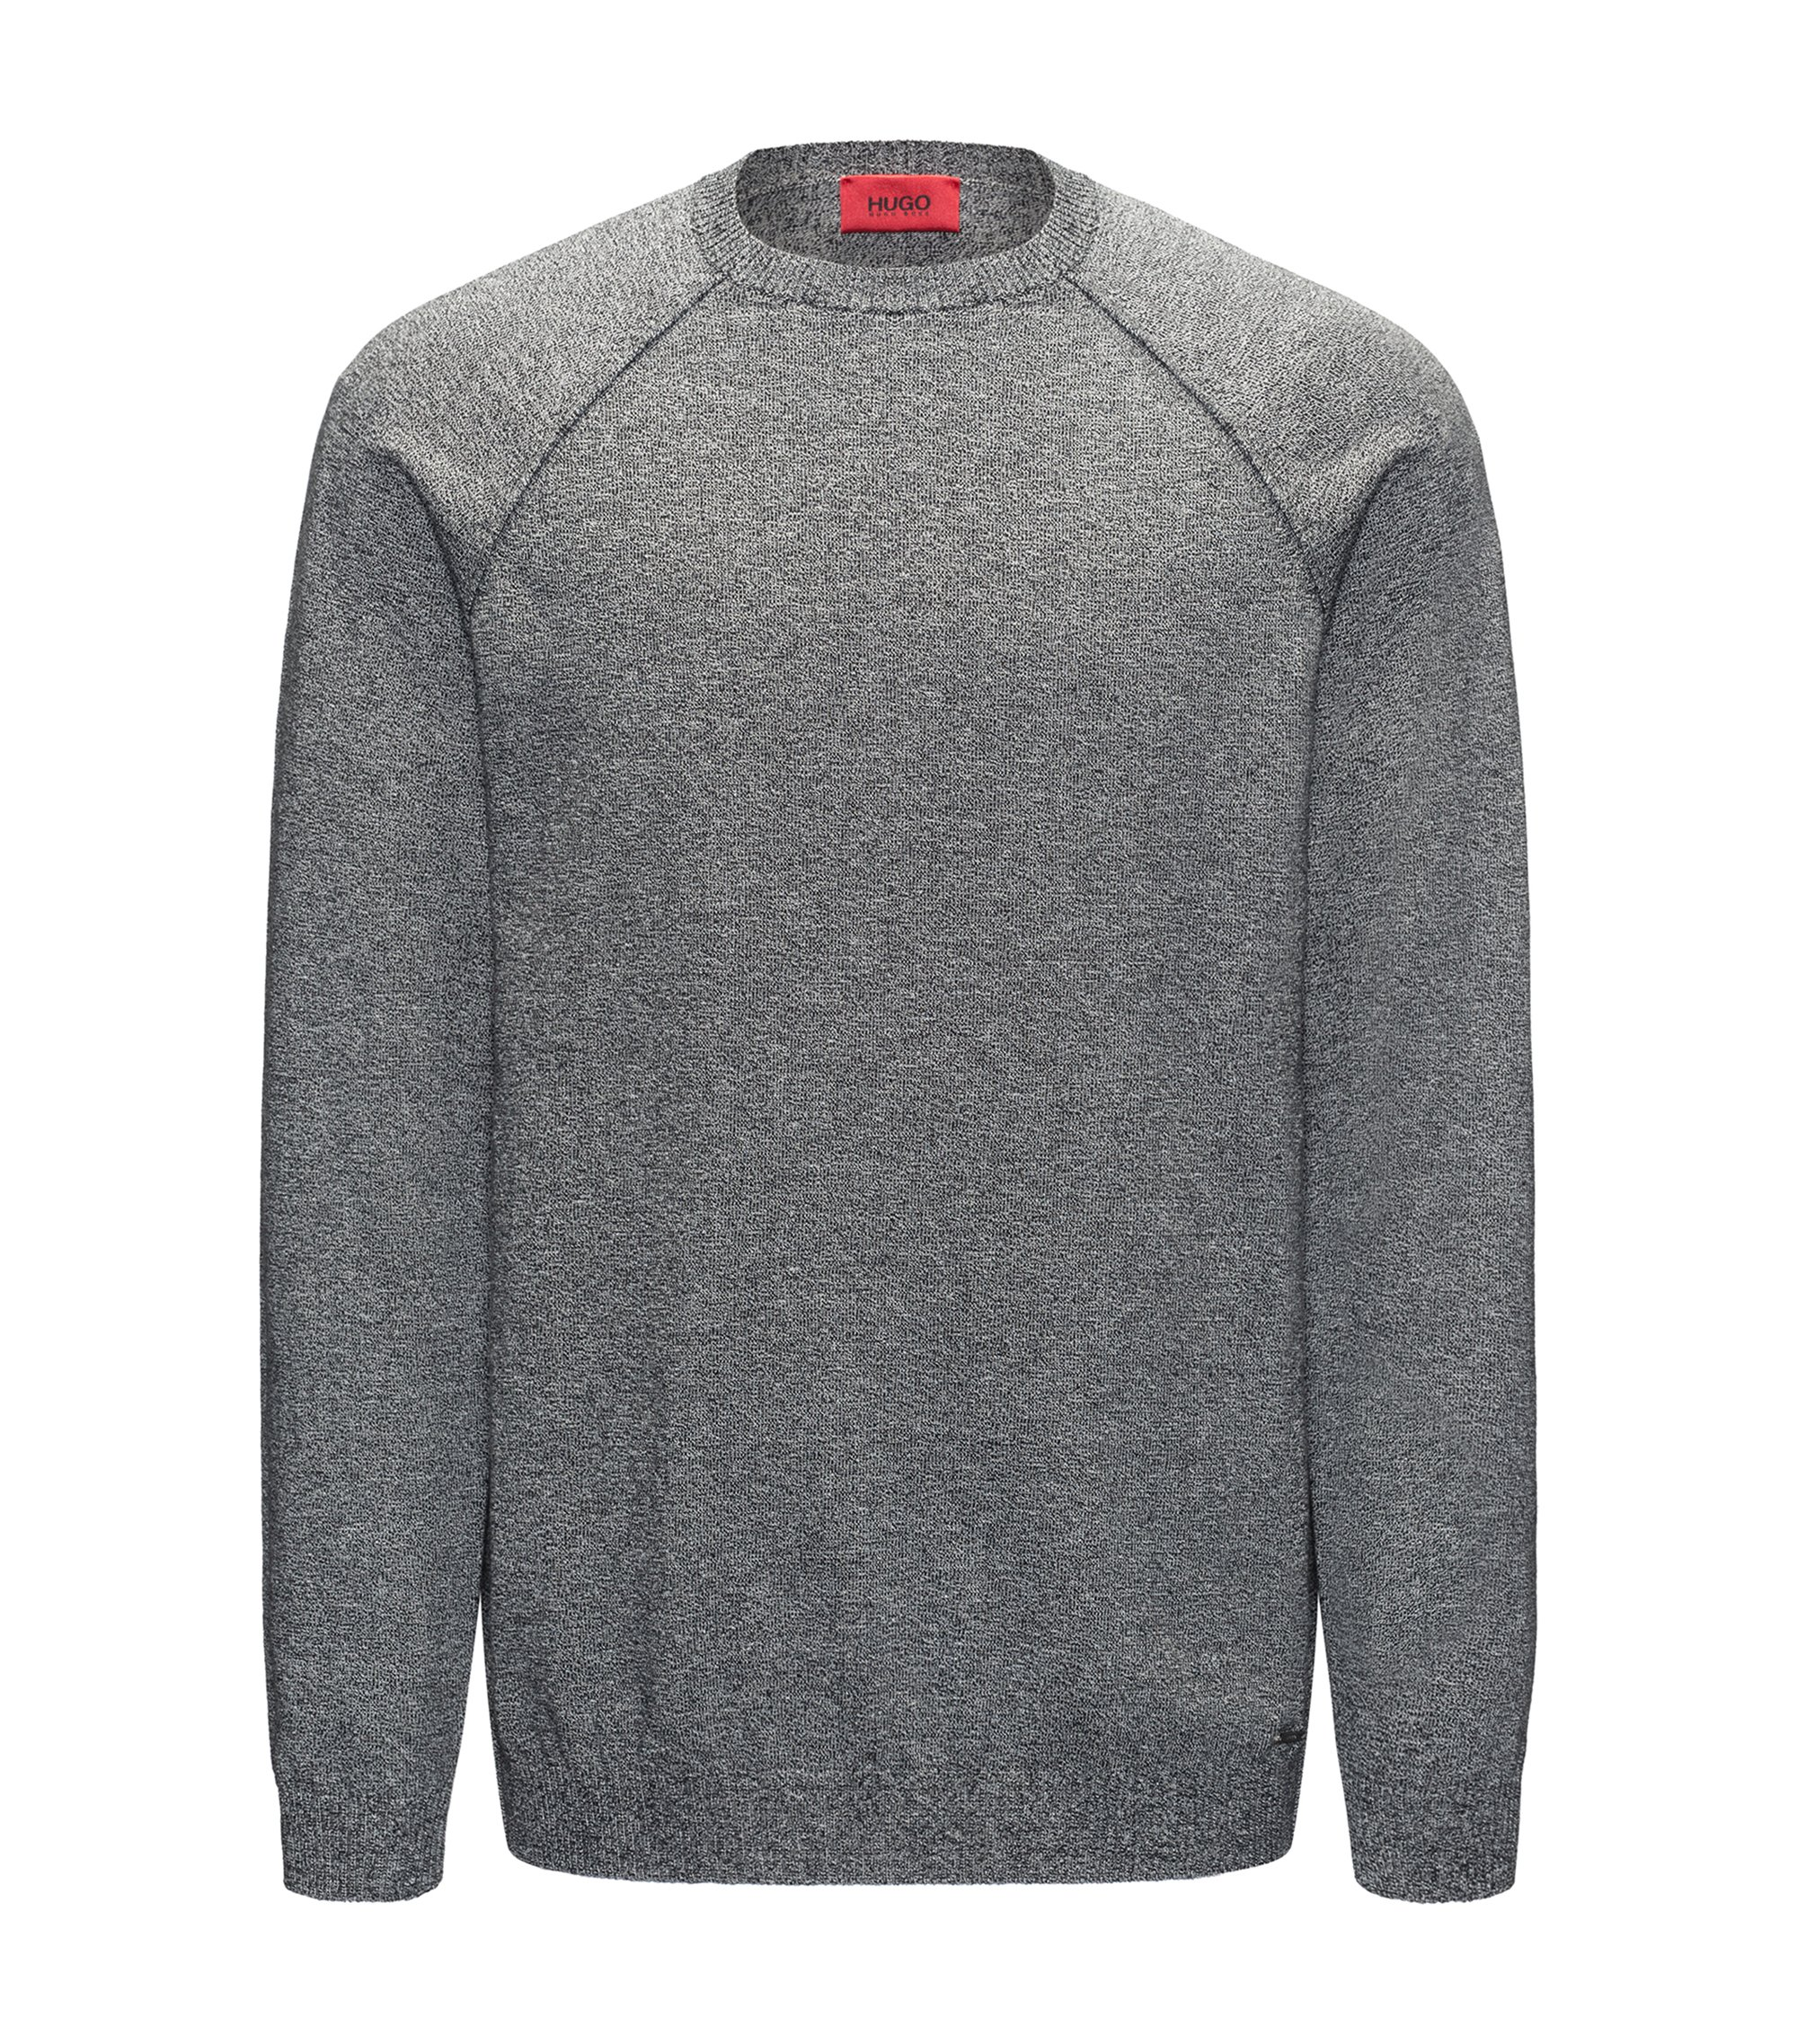 Mouliné sweater in pure cotton, Dark Grey